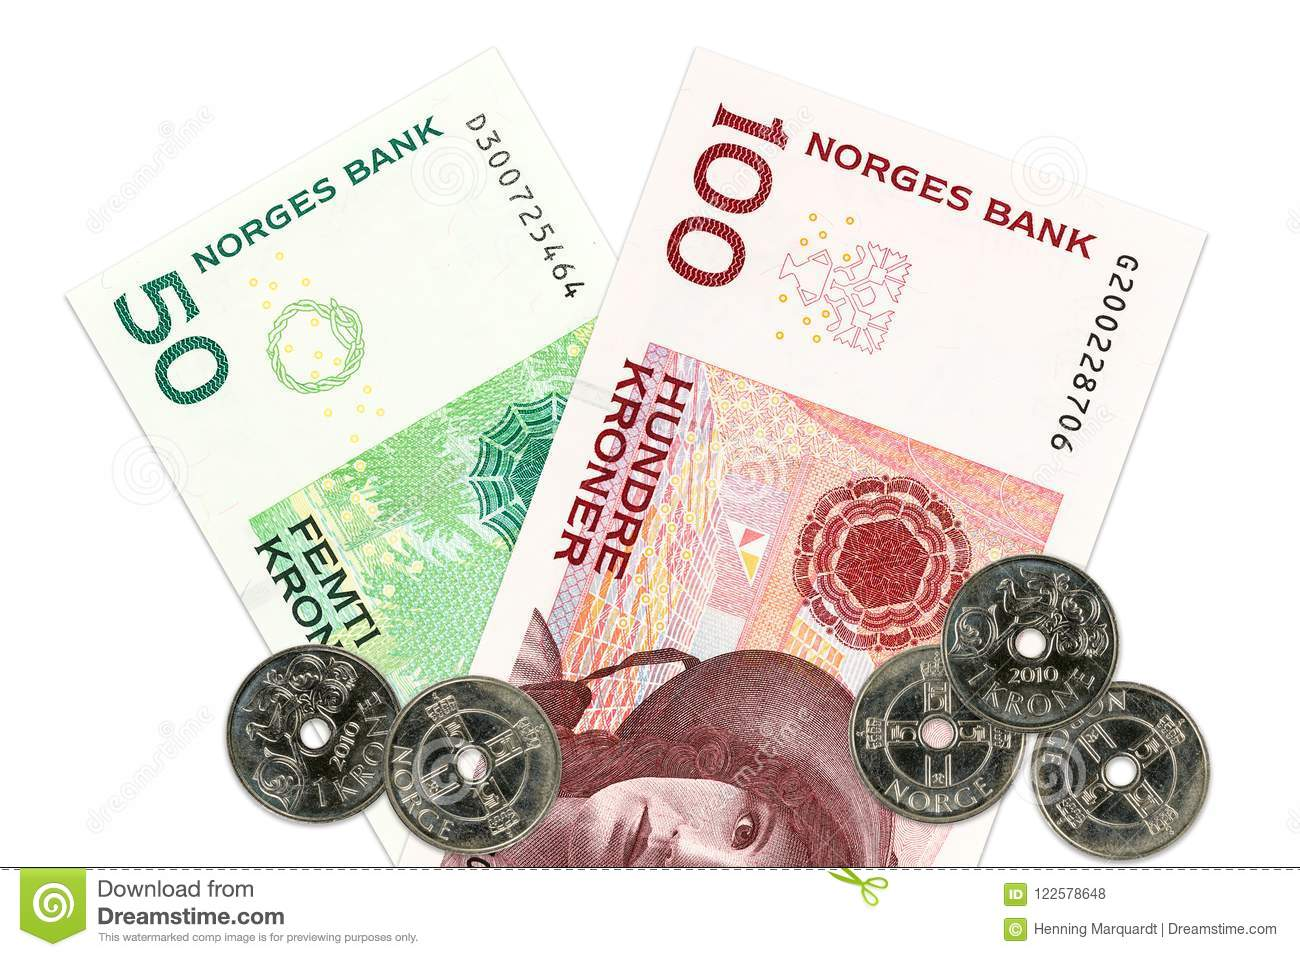 Two norwegian krone bank notes and coins